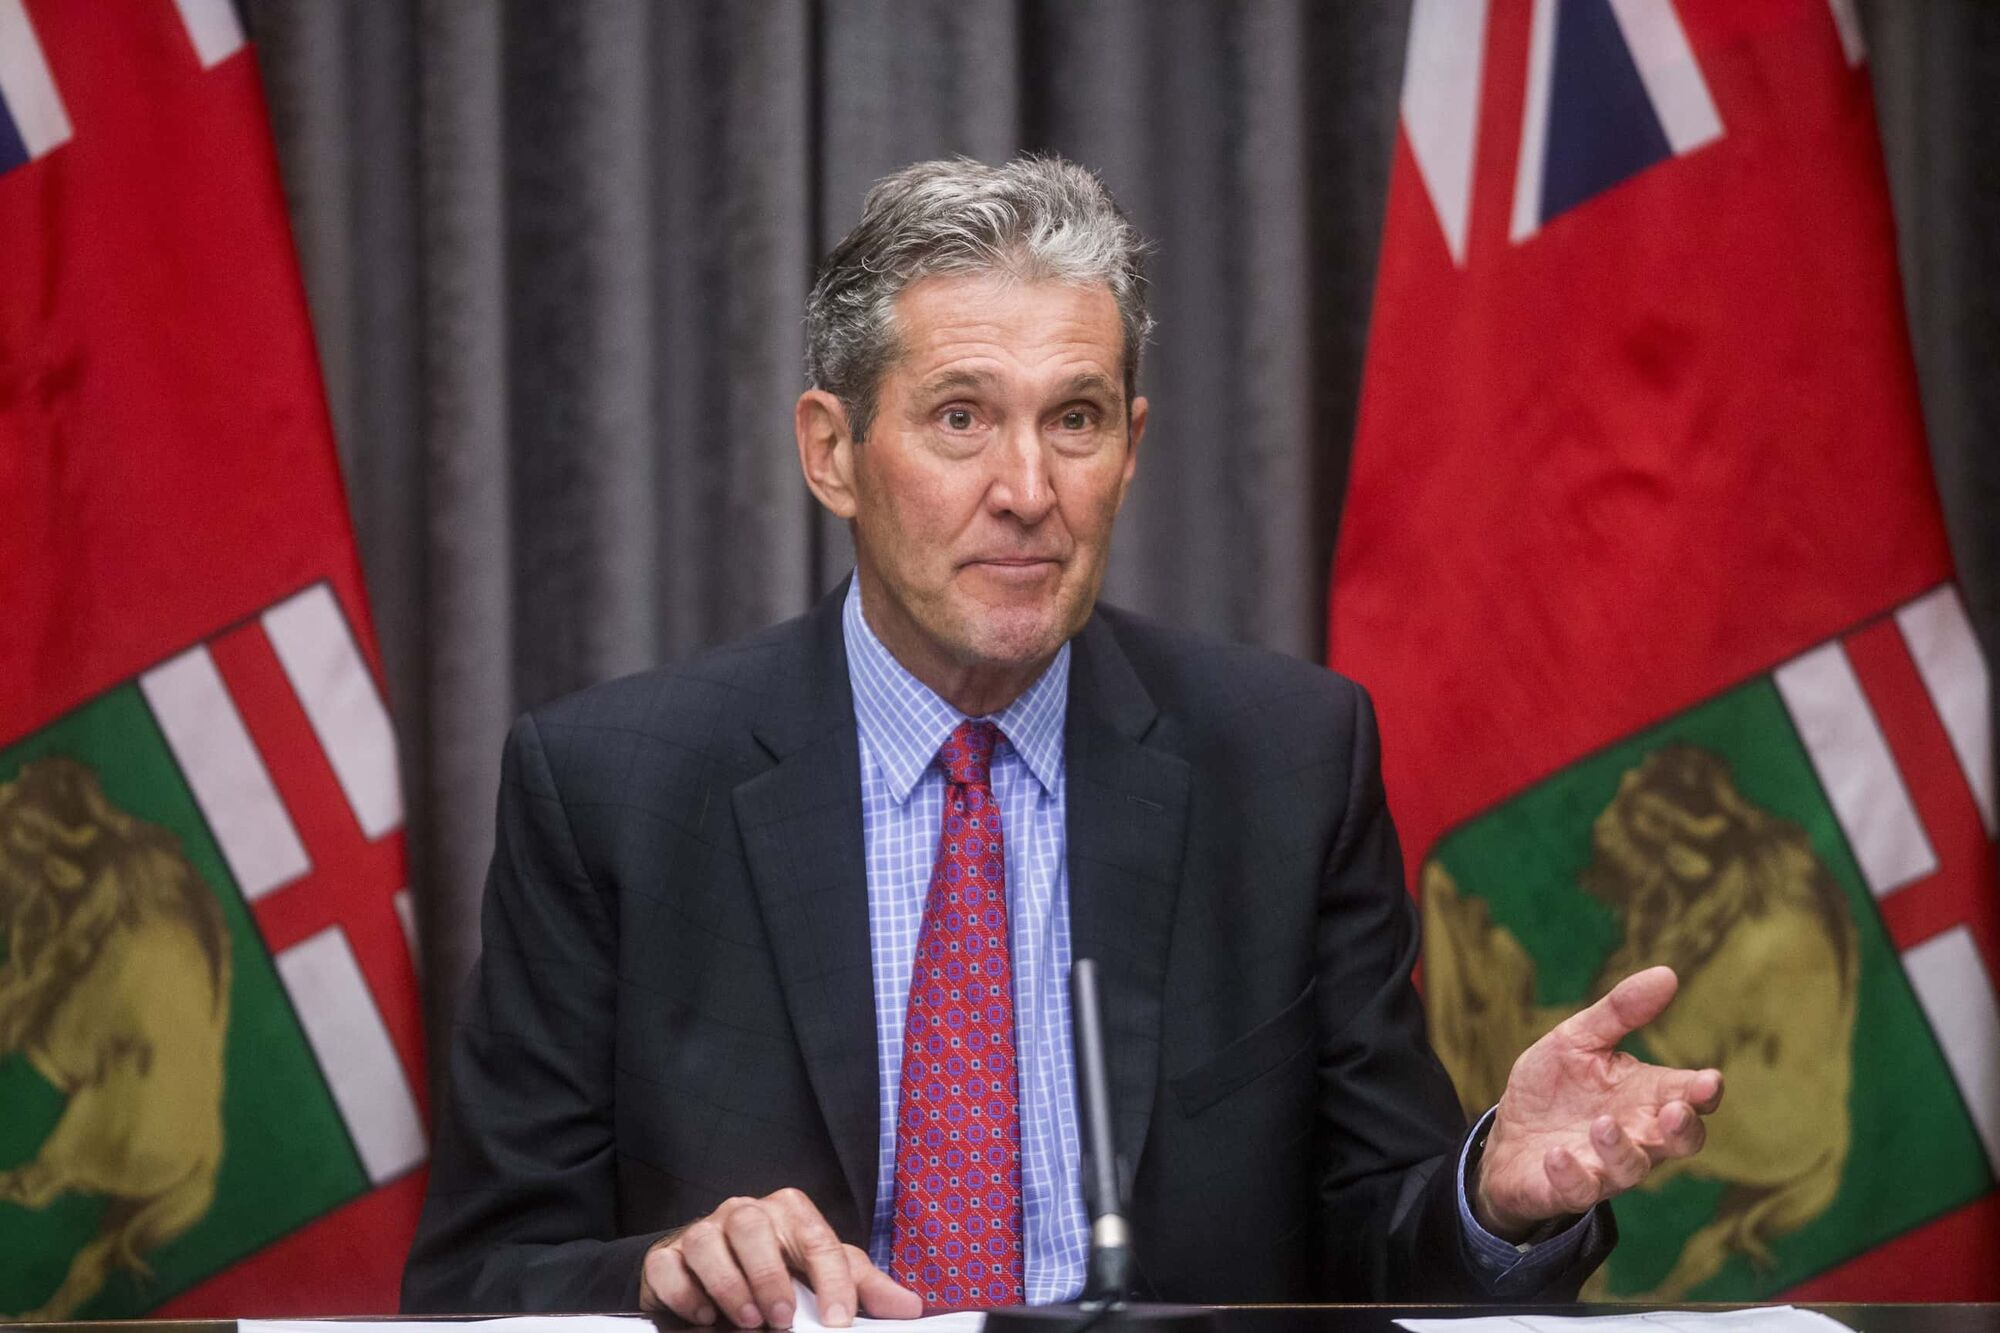 Premier Brian Pallister announced the Manitoba Job Restart program on Tuesday. The program will pay people $2,000 over six weeks to get back to work and stop collecting the Canadian Emergency Response Benefit. (Mikaela MacKenzie / Winnipeg Free Press)